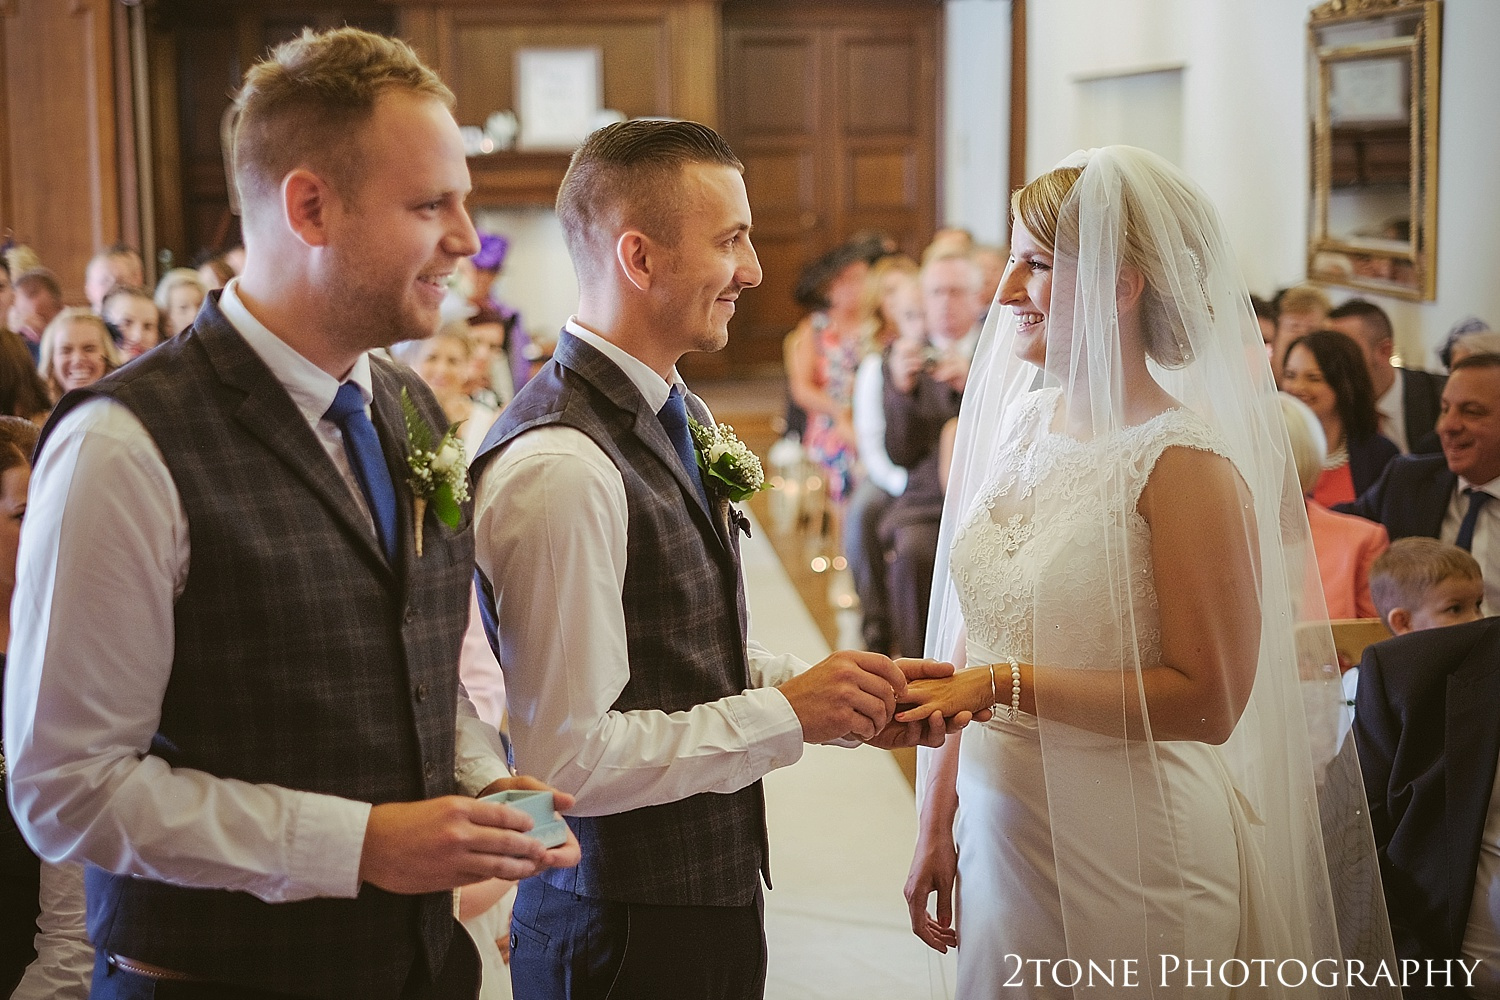 The exchange of the rings.  Wedding photography at Guyzance Hall by wedding photographers www.2tonephotography.co.uk